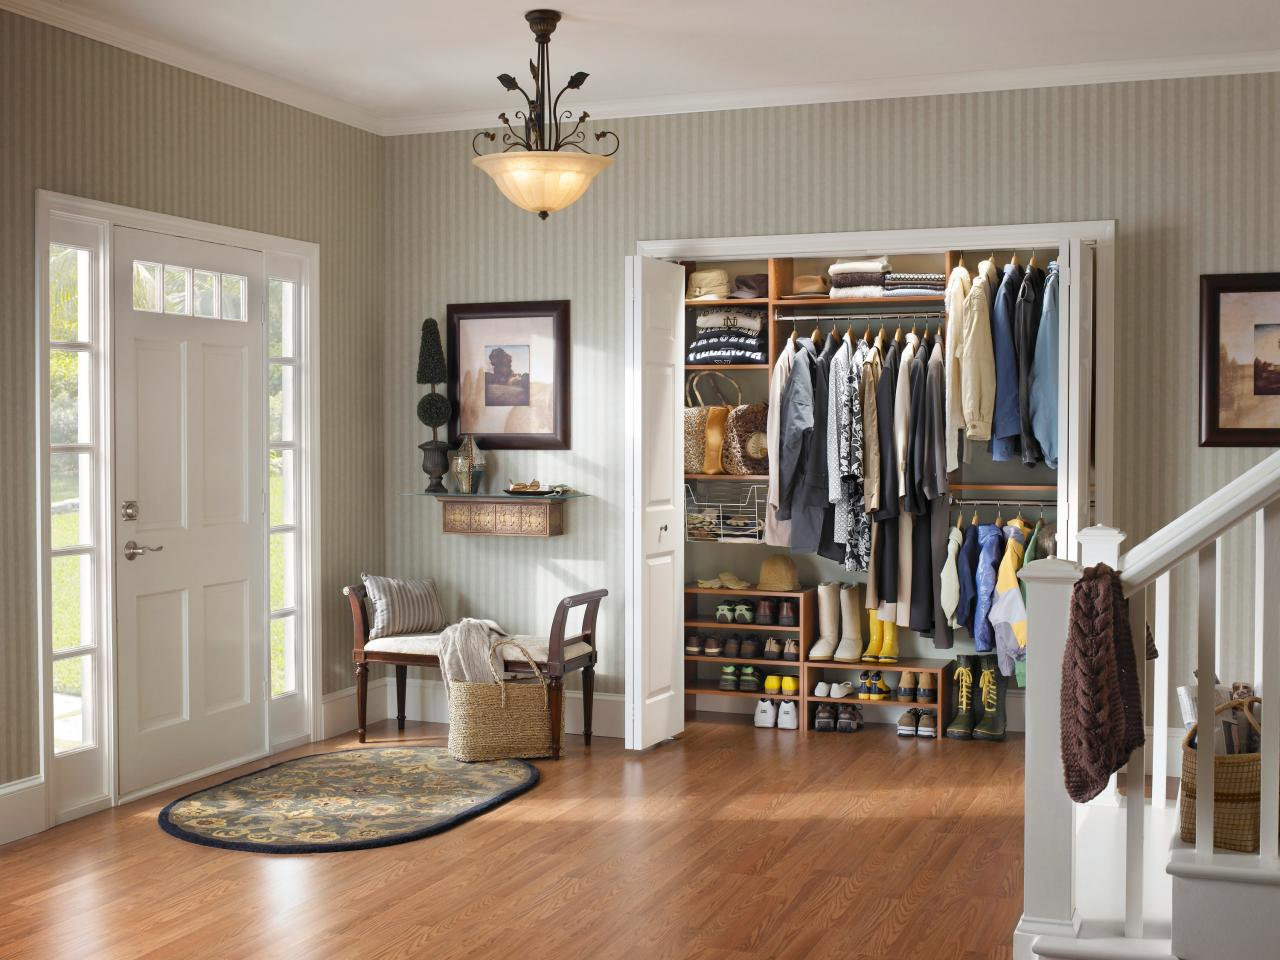 Foyer Closet Door : The tips to apply closet organizer ideas midcityeast